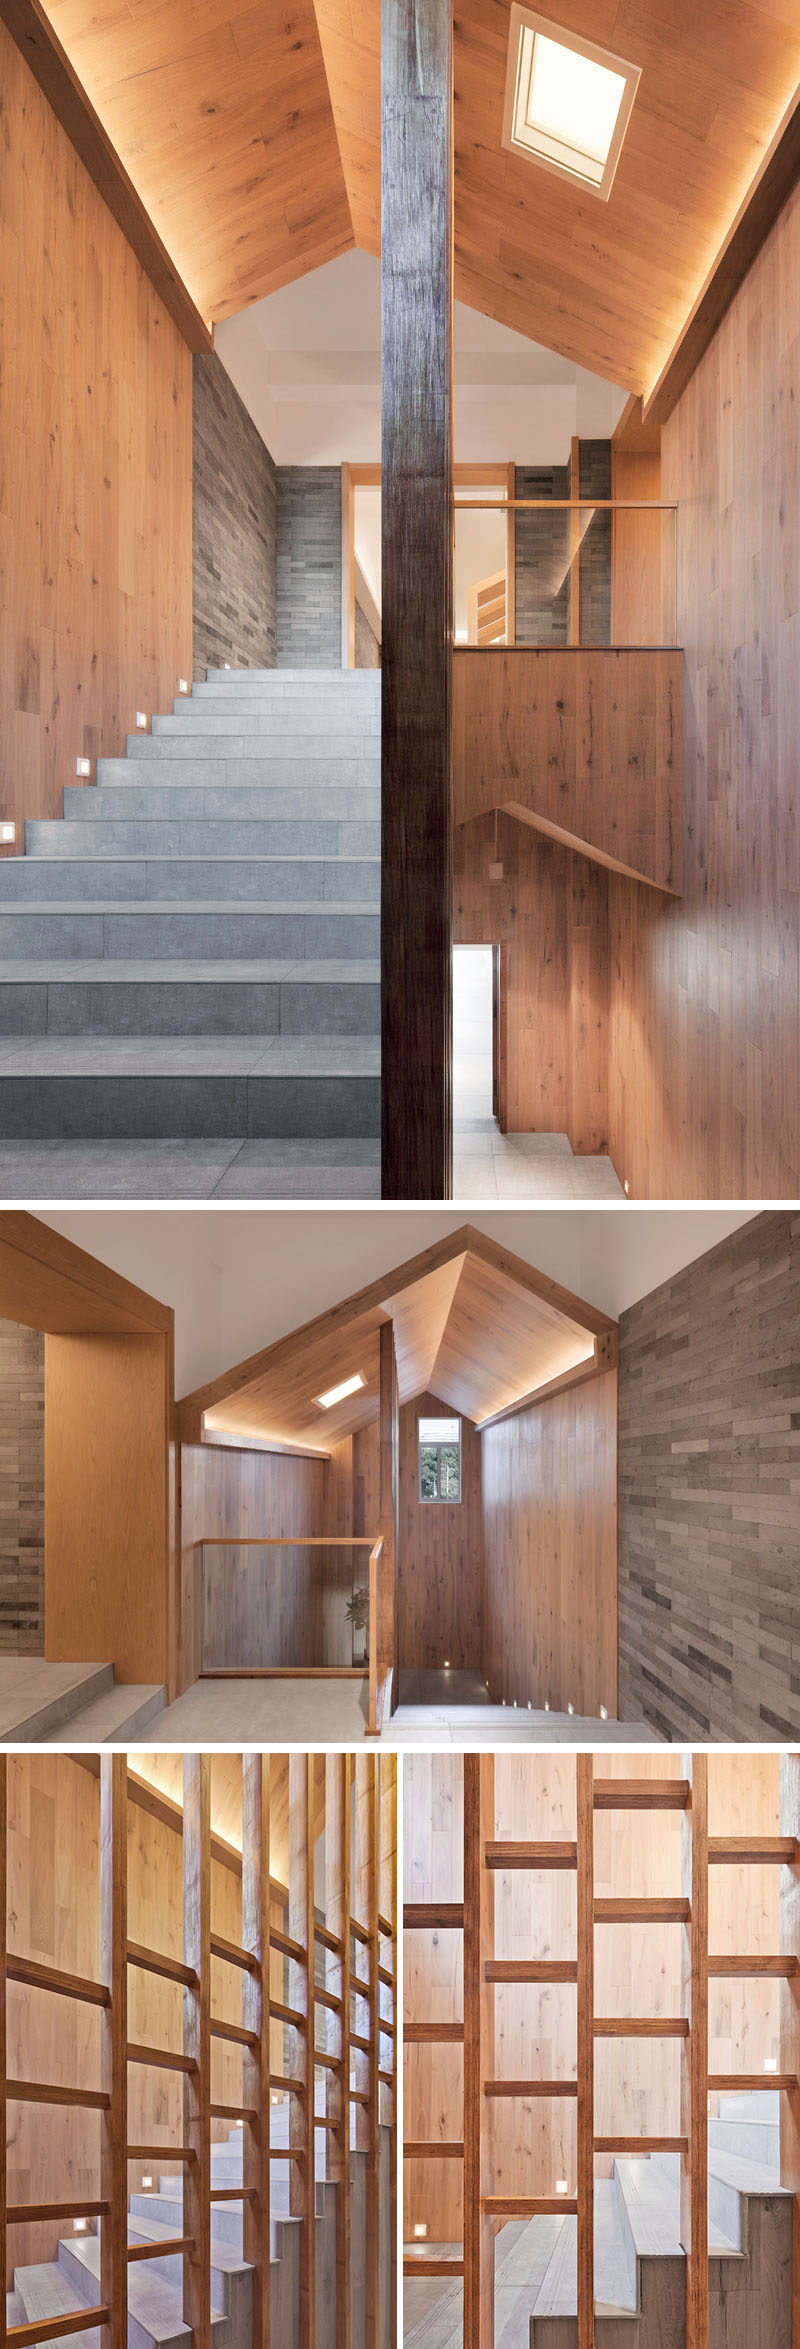 Stairs surrounded by wood lead to the upper floor of this modern hotel, while a skylight and hidden lighting make sure the stairwell is bright and well lit. #ModernHotel #Stairs #Wood #Lighting